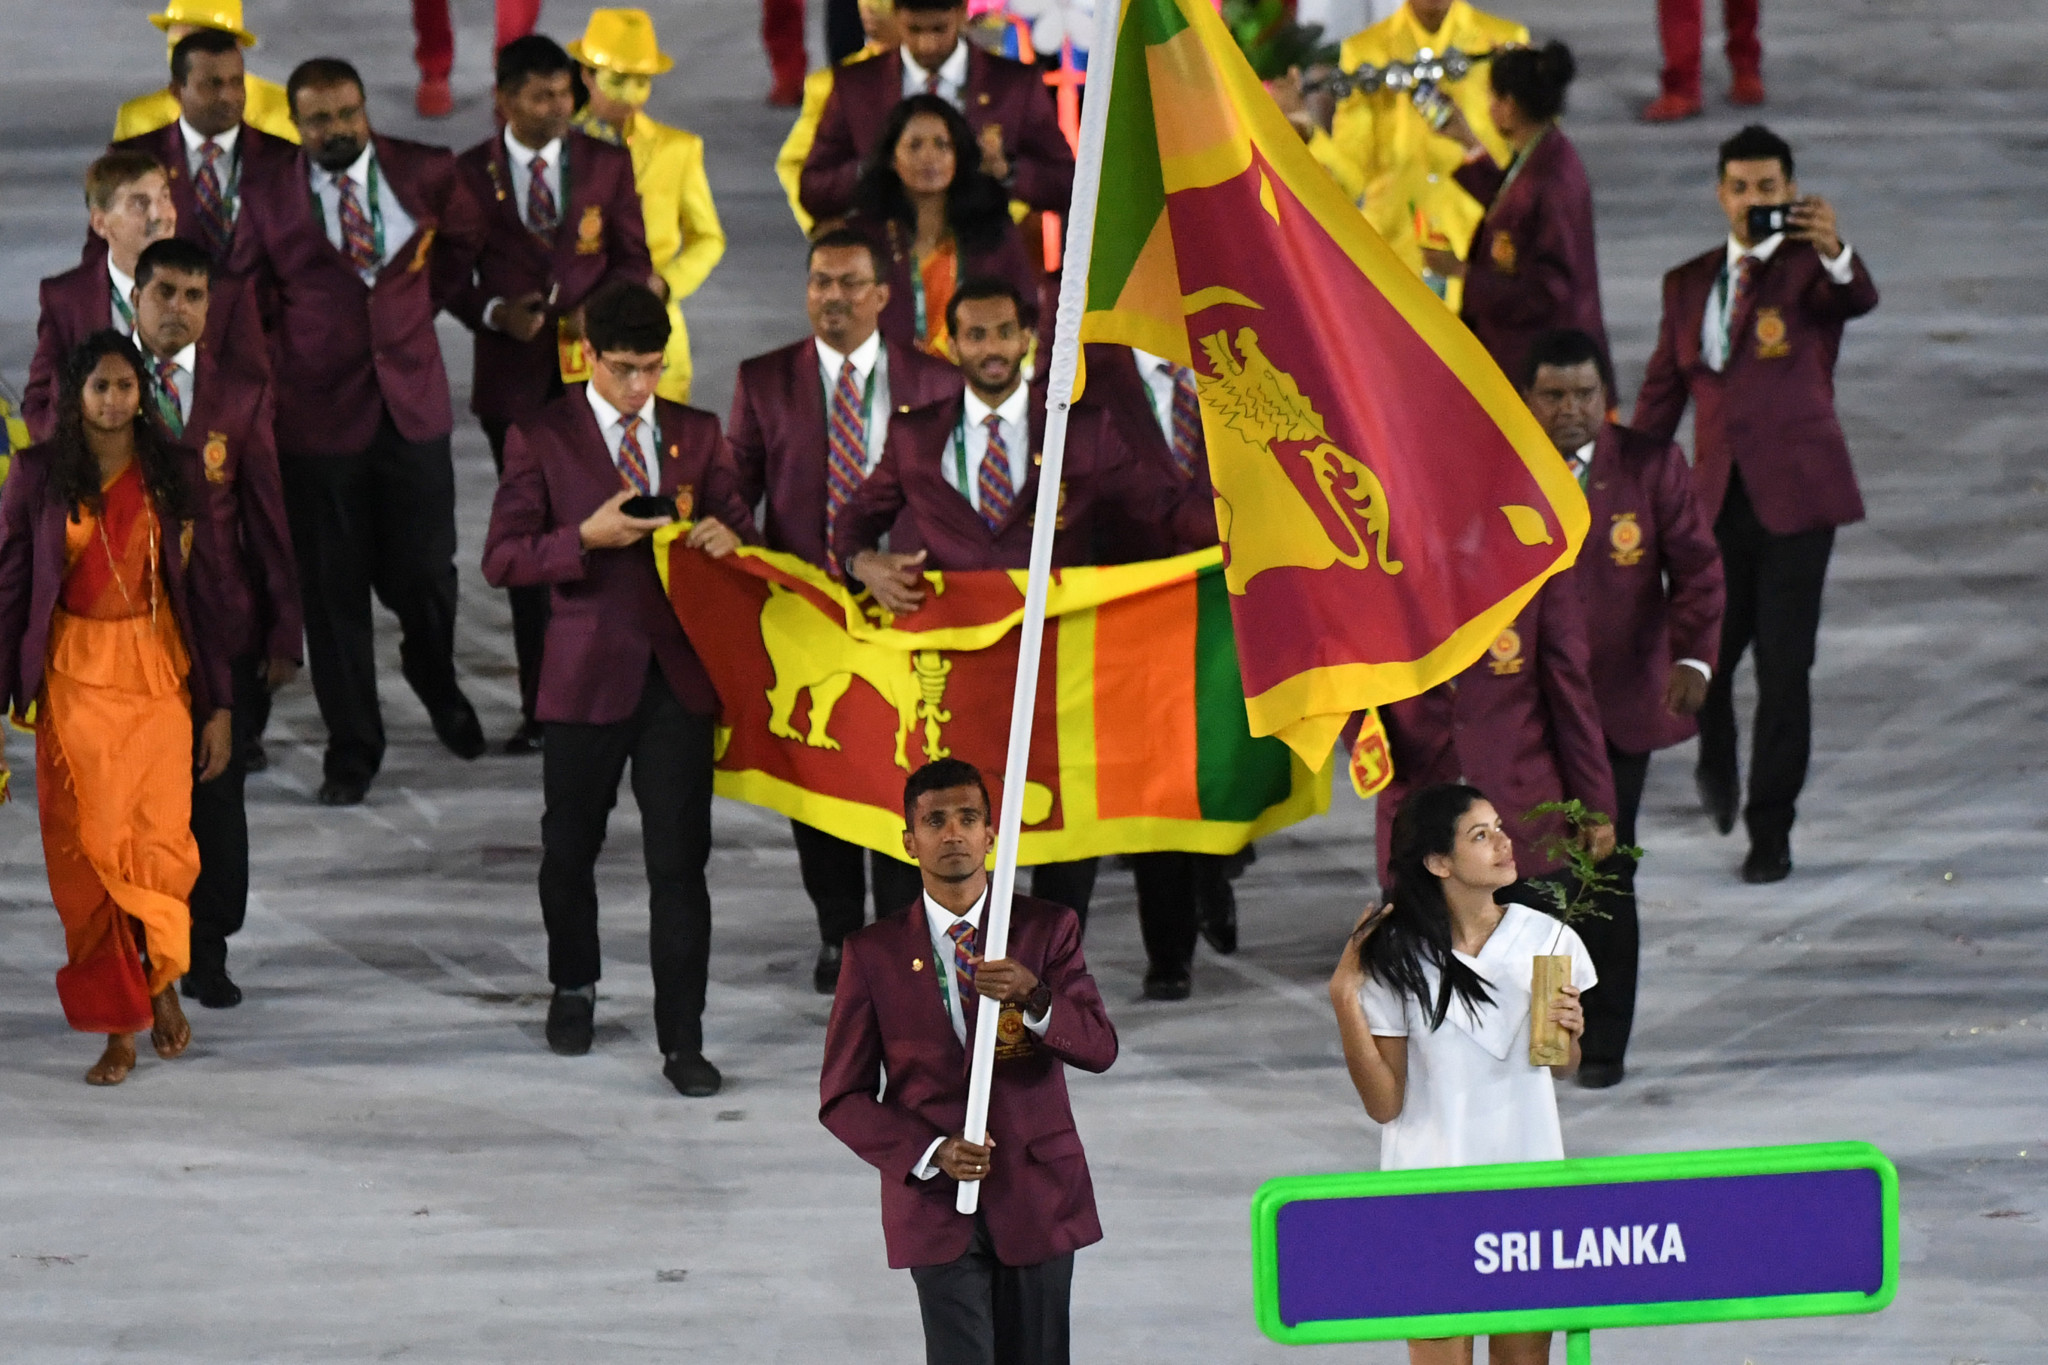 Sri Lanka are preparing for making their 18th Summer Olympic Games appearance at Tokyo 2020 ©Getty Images